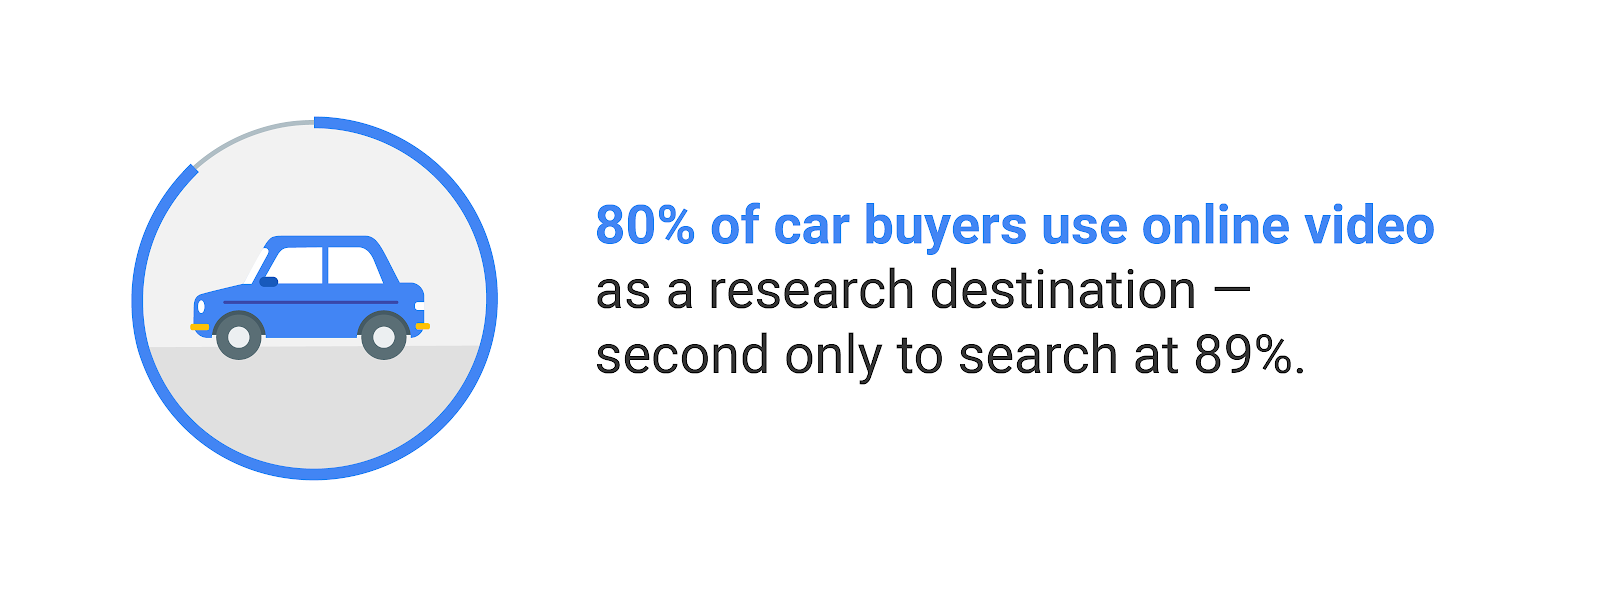 80% of car buyers use online video